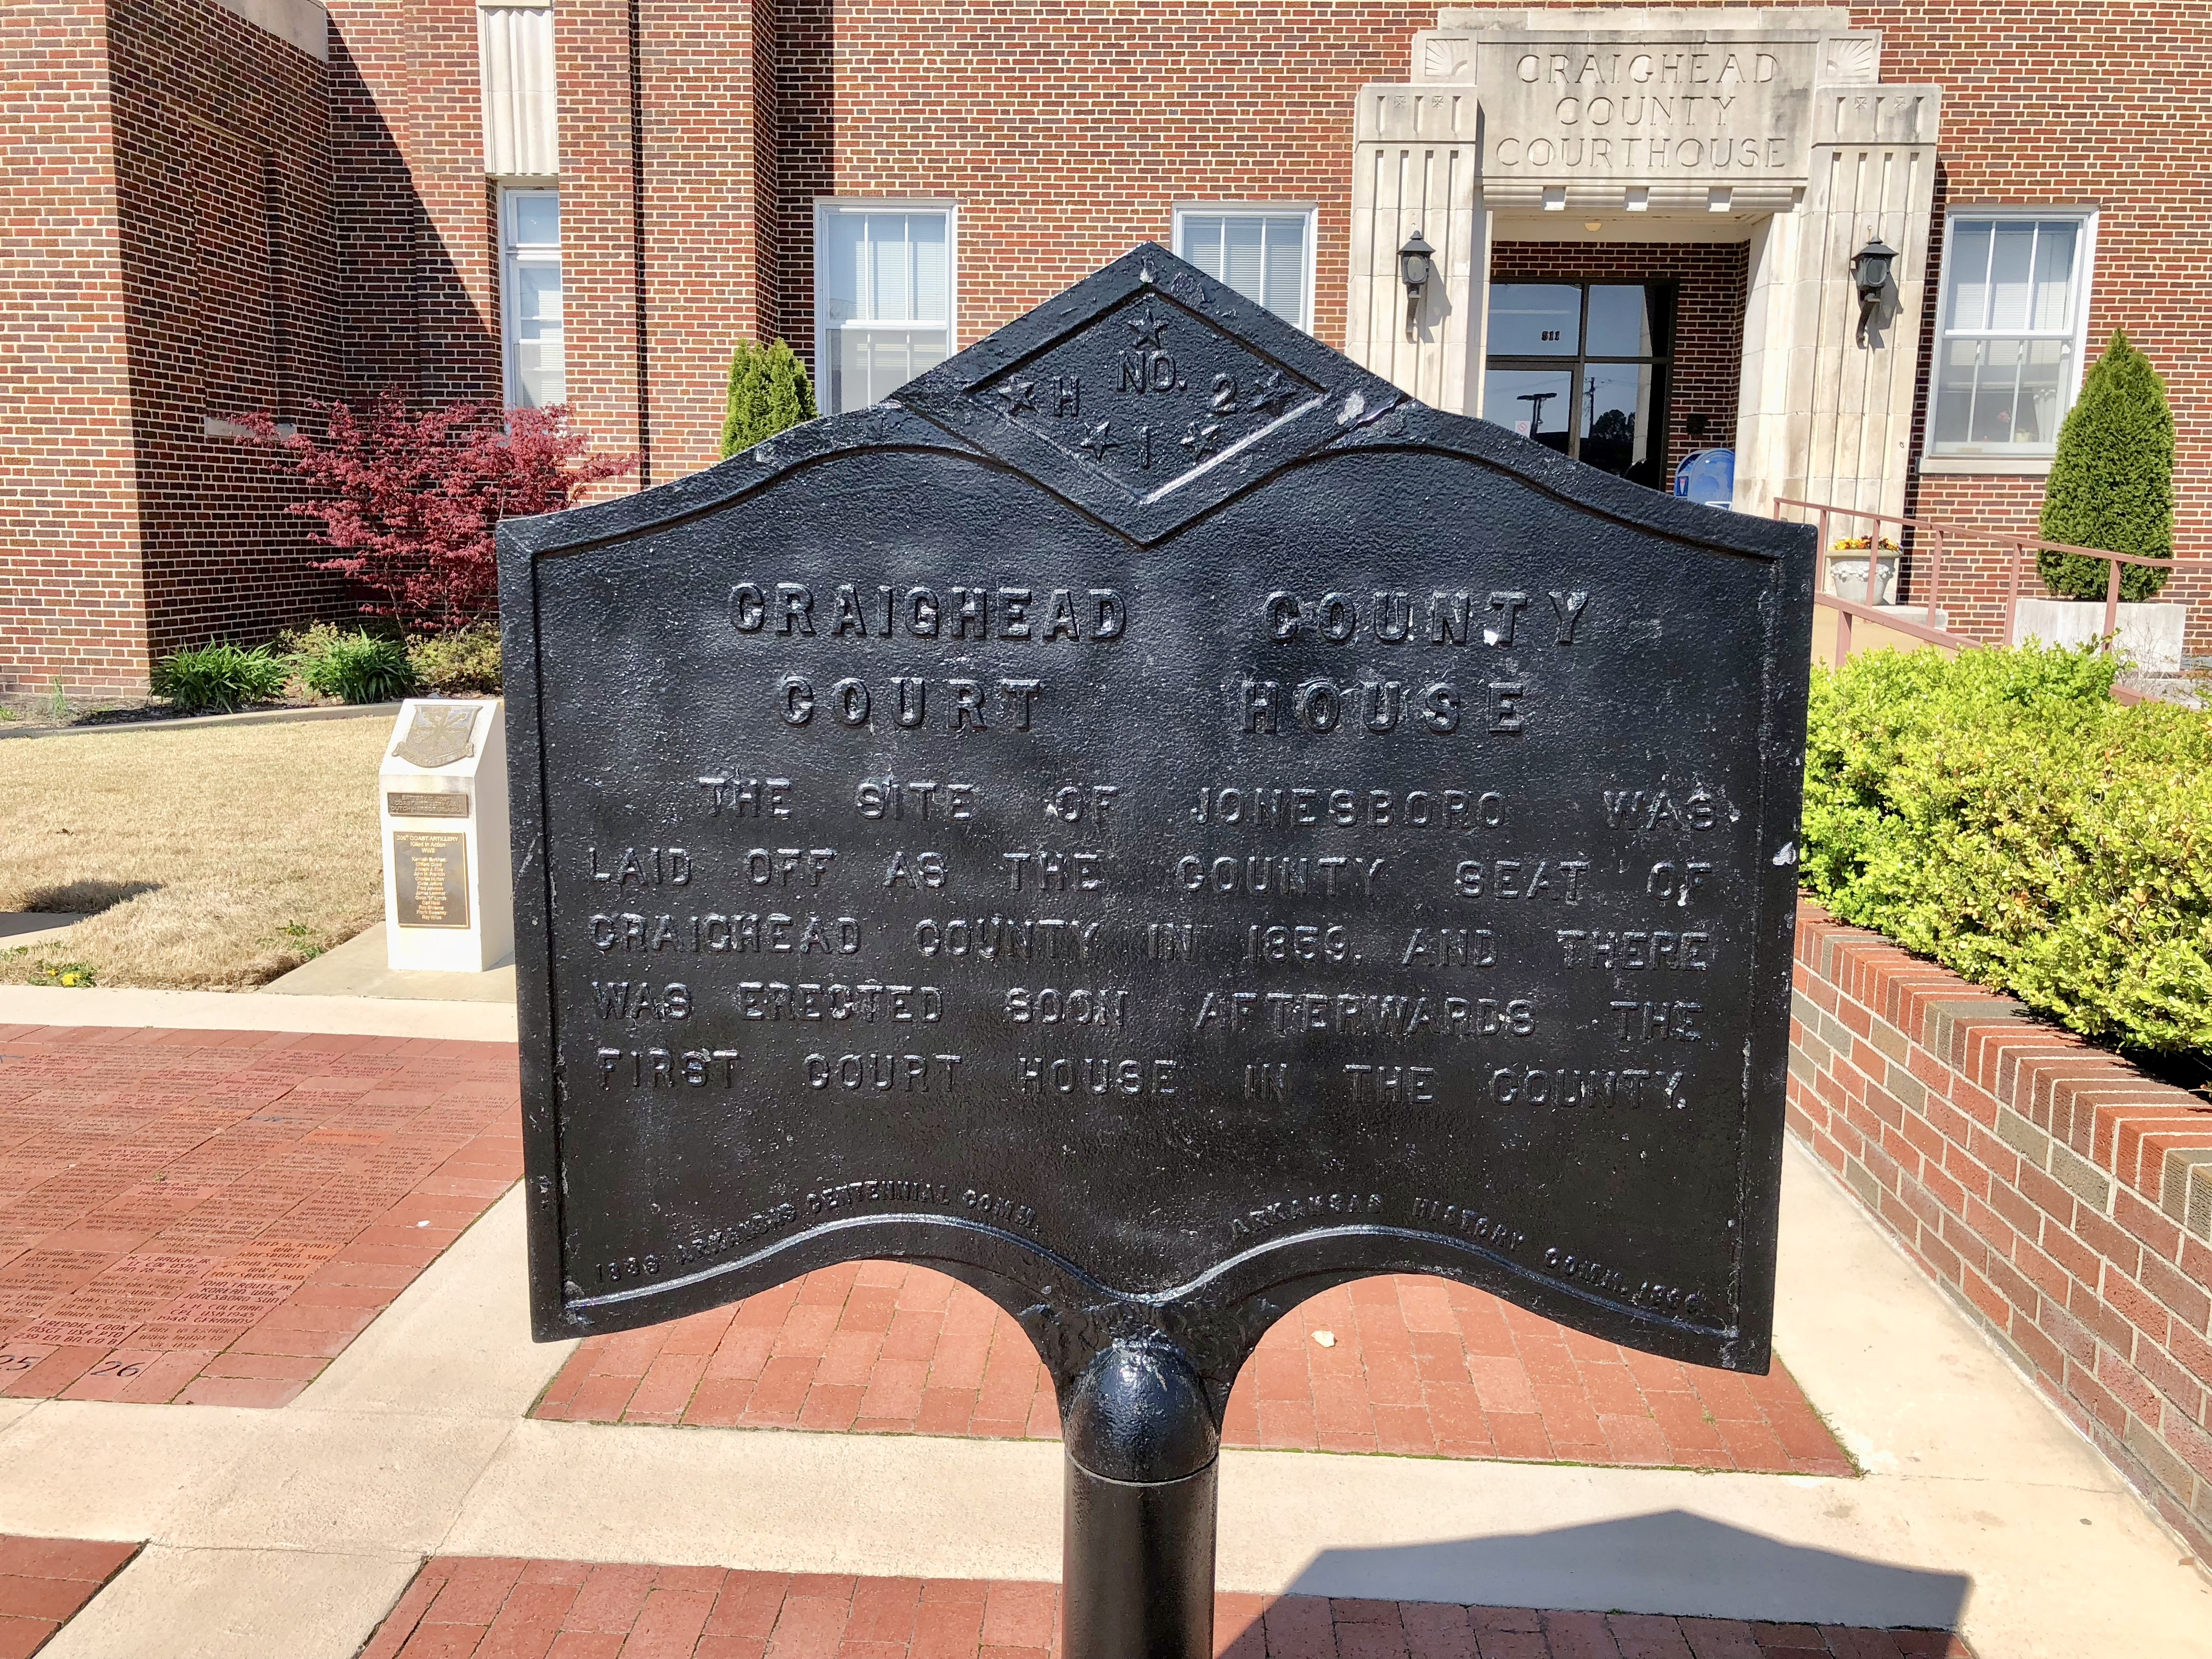 Craighead County Court House Marker